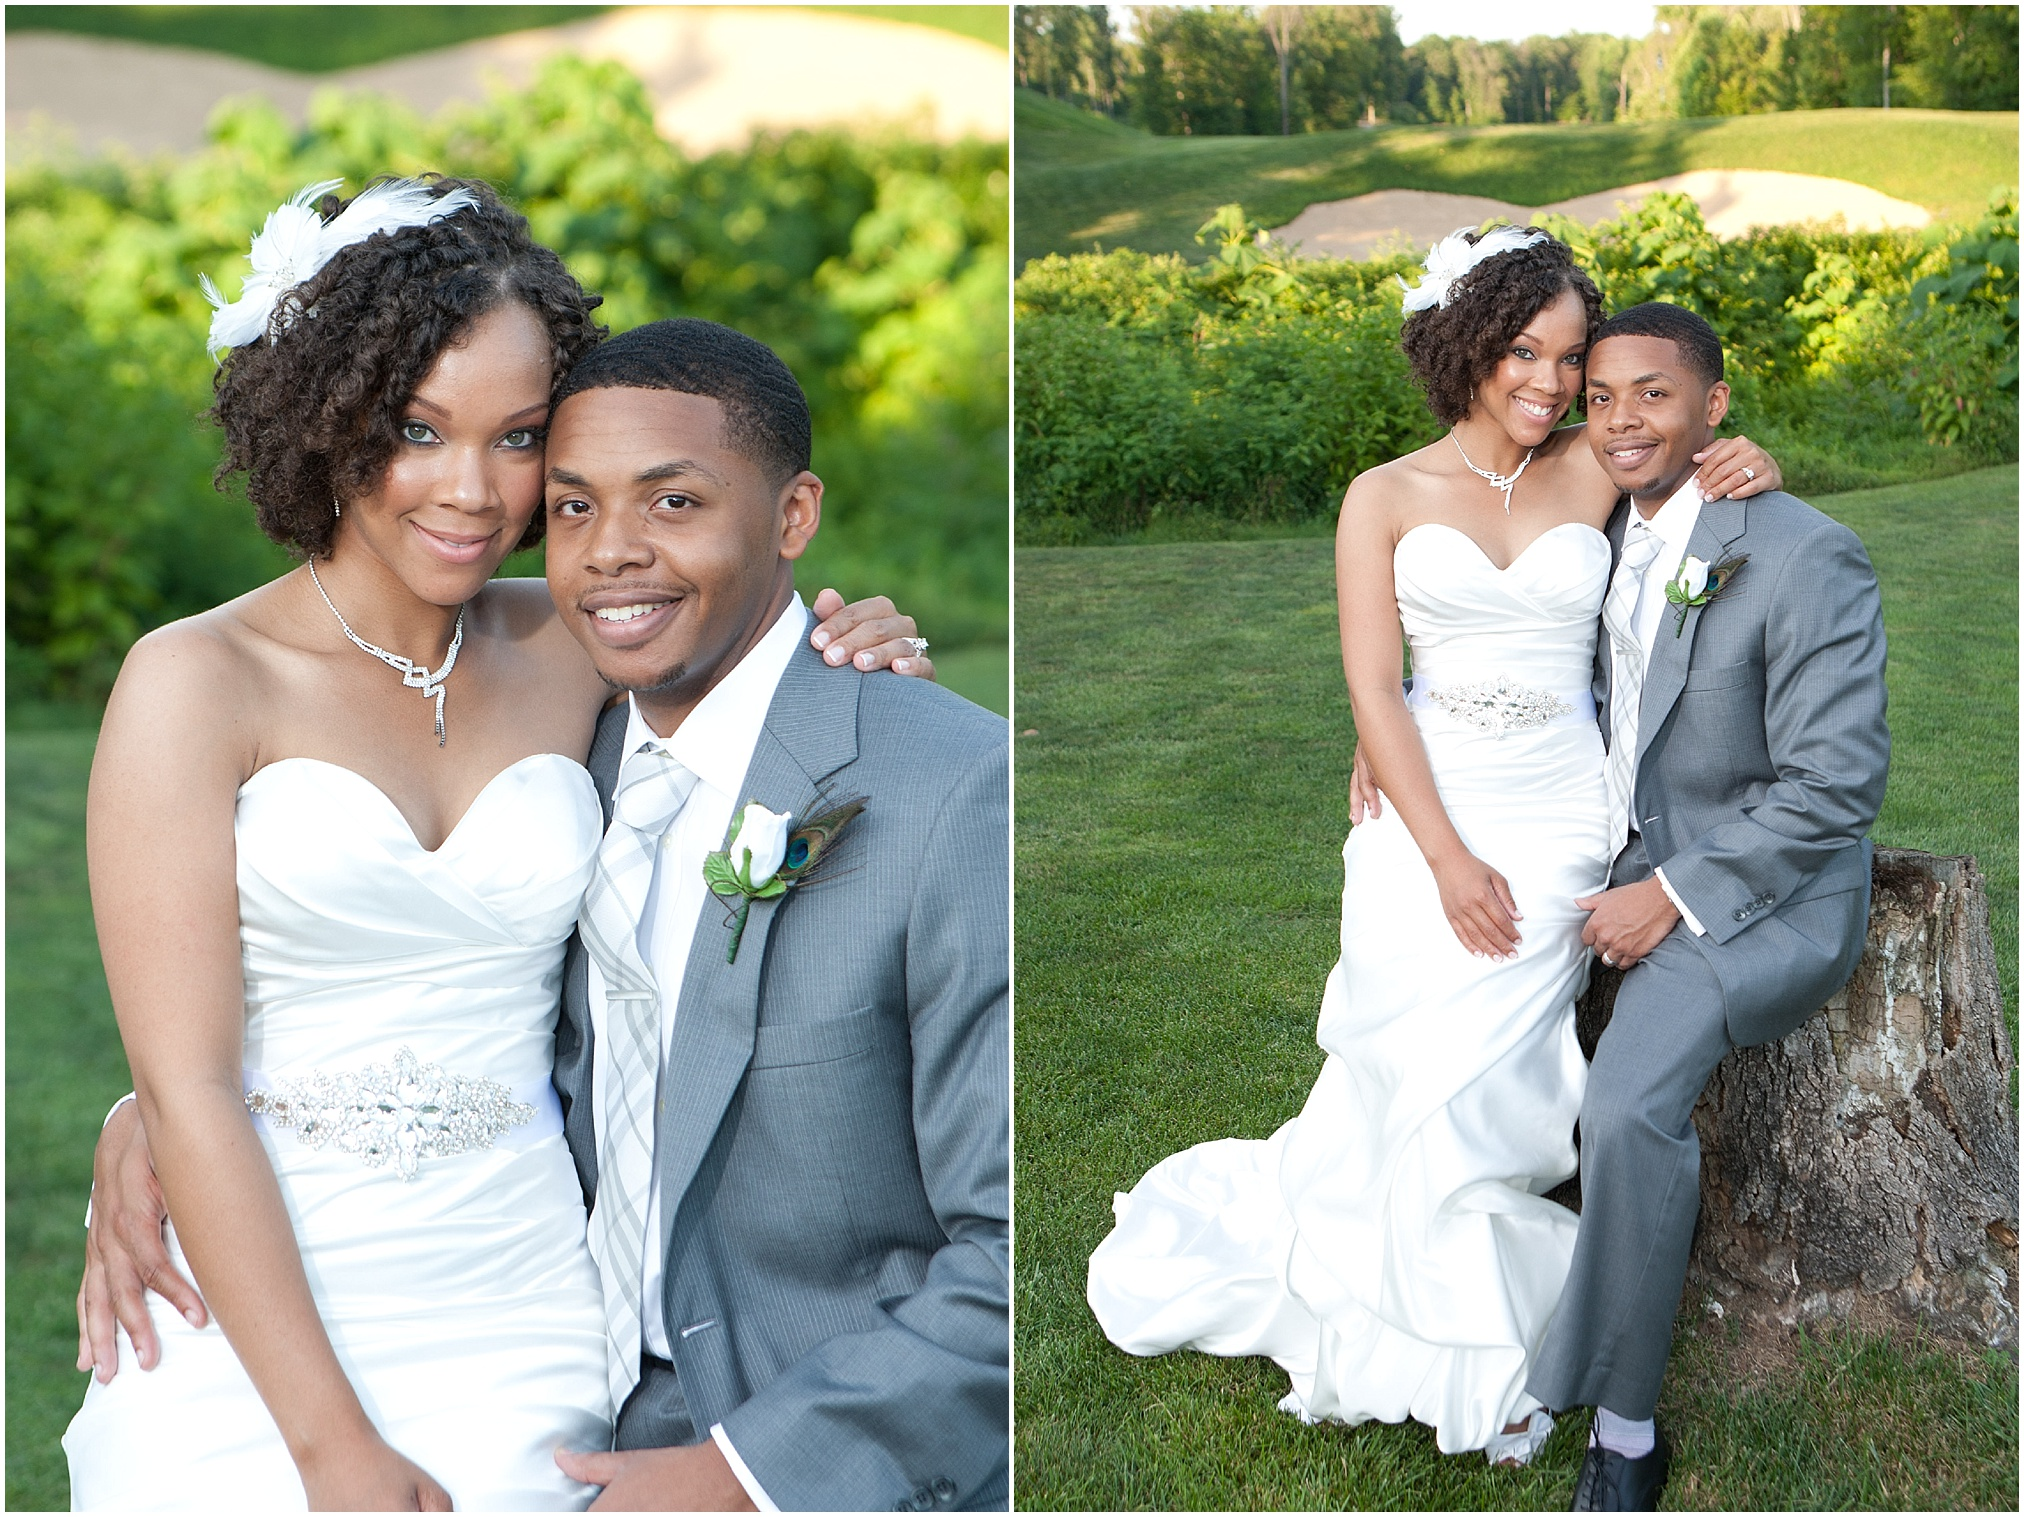 Photos from my wedding day by LuLee Photography.